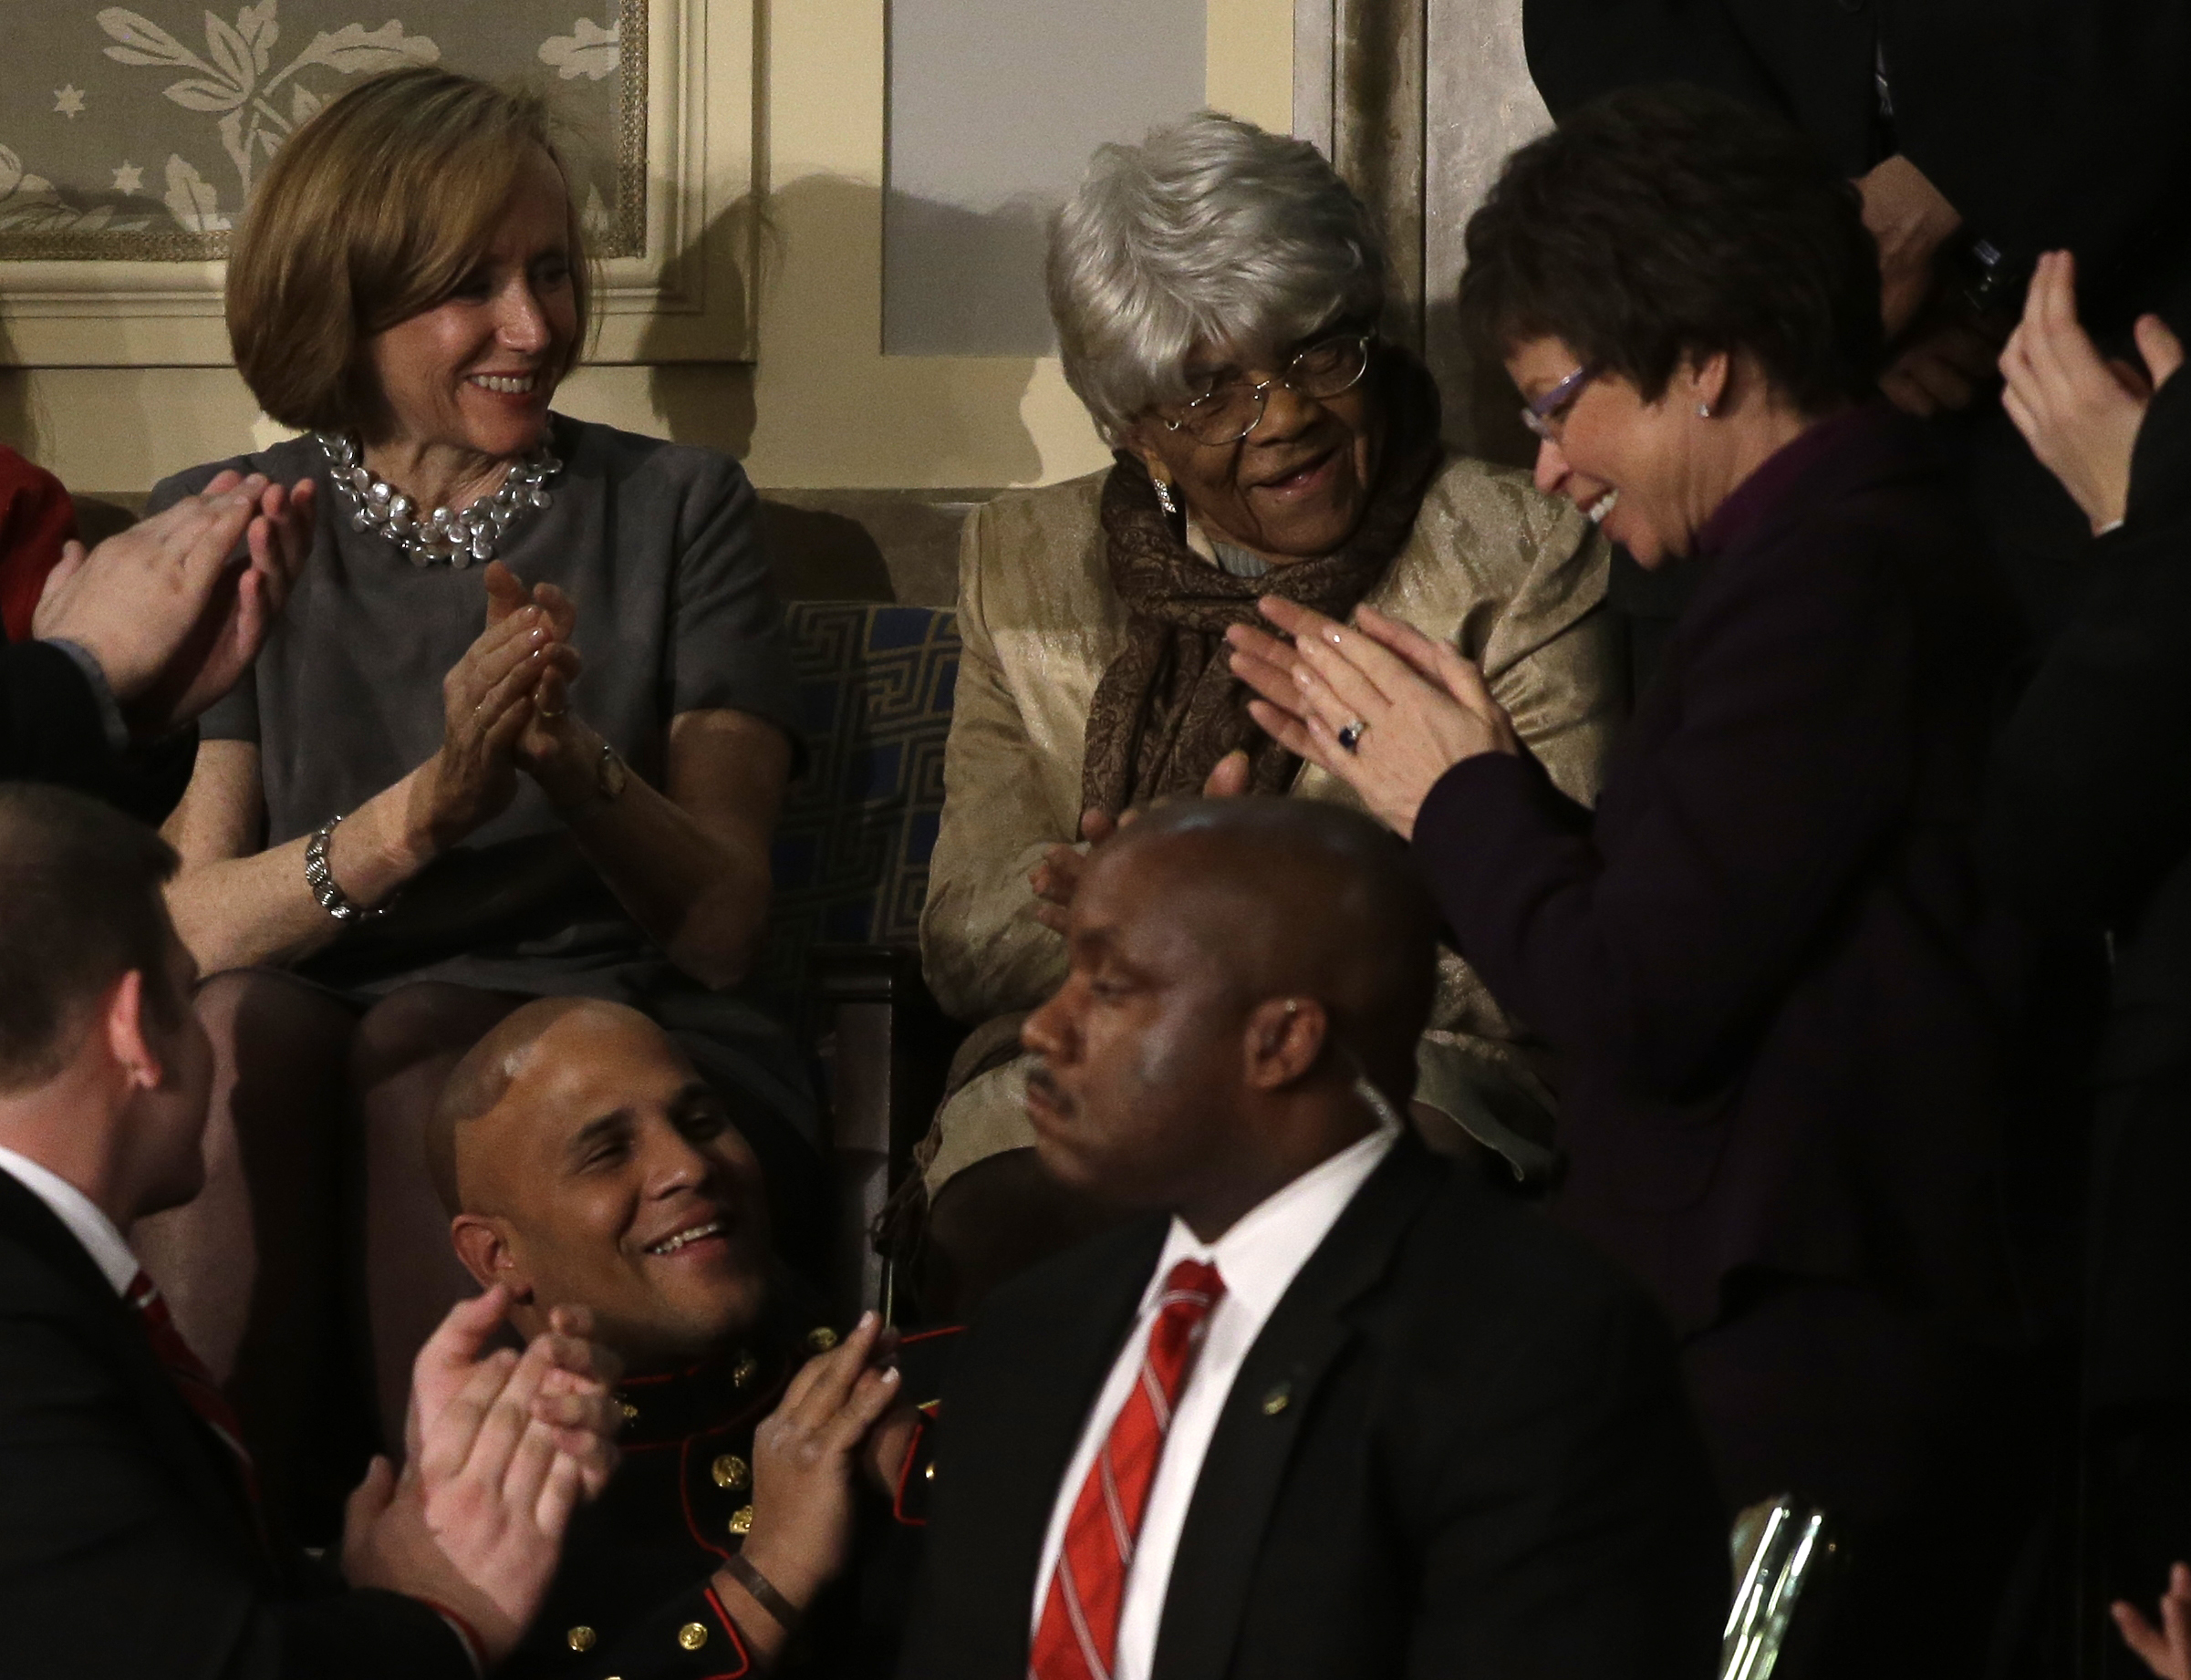 """Desiline Victor, 102, of Miami is applauded by White House senior adviser Valerie Jarrett, right, and others, during President Barack Obama's State of the Union address during a joint session of Congress on Capitol Hill in Washington, on Feb. 12, 2013. Victor is being hailed as a champion voter after heading to her local polling place twice and waiting more than three hours in line to cast her vote. She was reportedly cheered by her fellow voters as she emerged from the polling place, her """"I Voted"""" sticker firmly in hand. """"I wanted to vote for my guy, my son, President Obama,"""" she told the Miami Herald."""